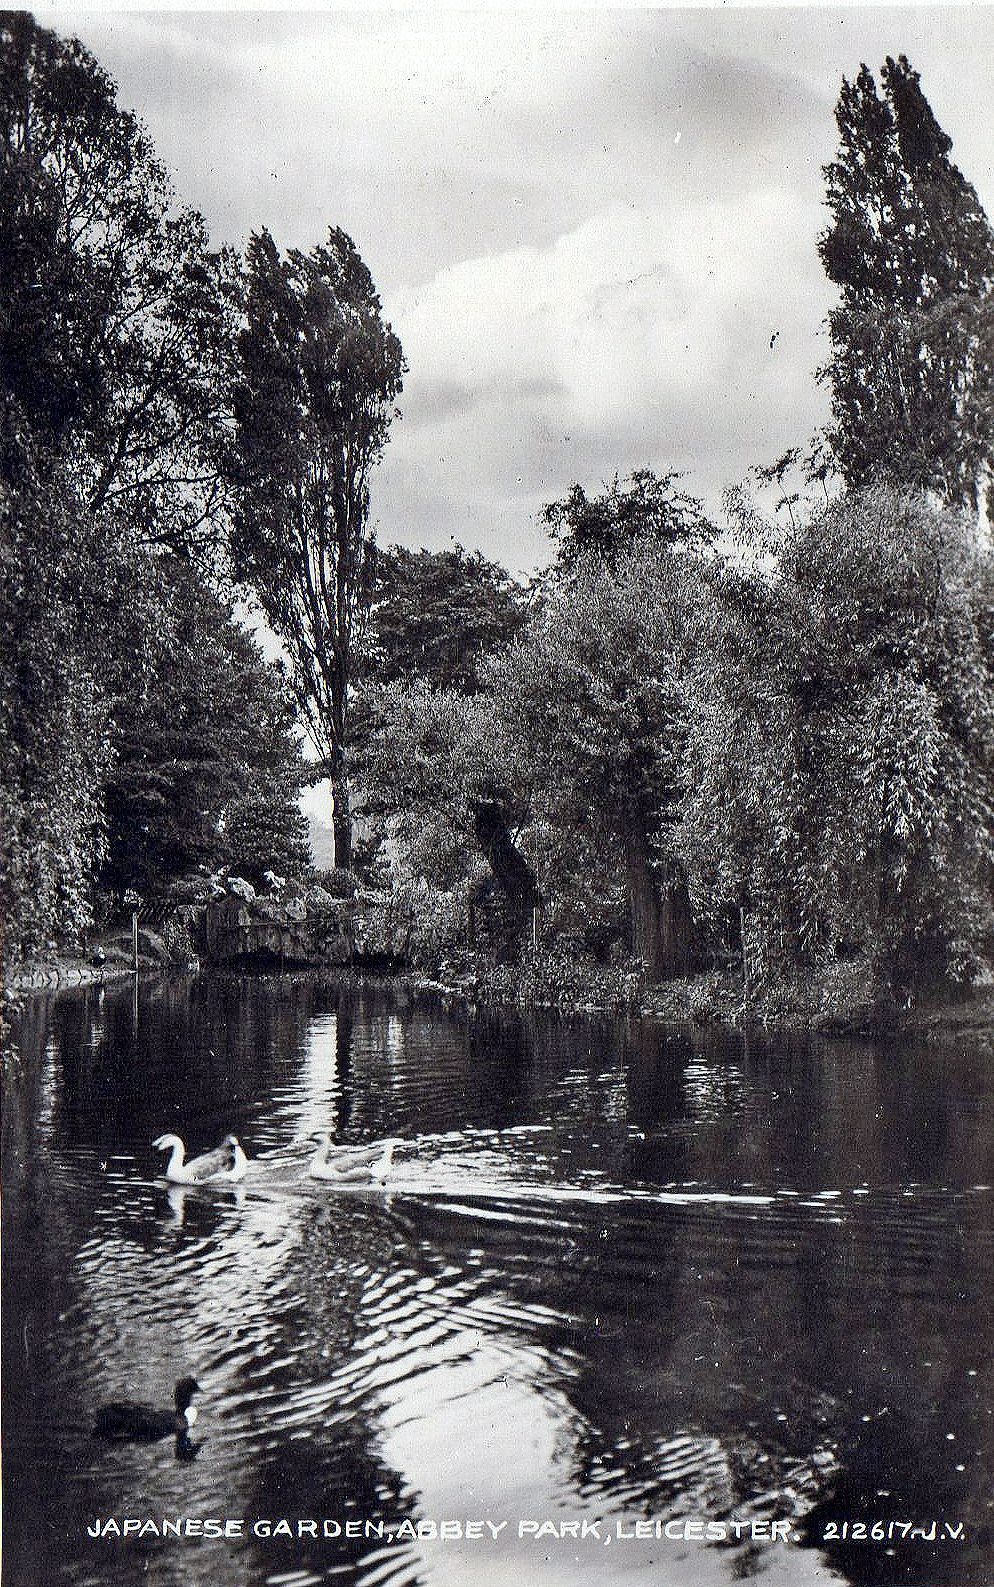 Abbey Park, Leicester. Undated: Lake in the Japanese garden (File:1532)